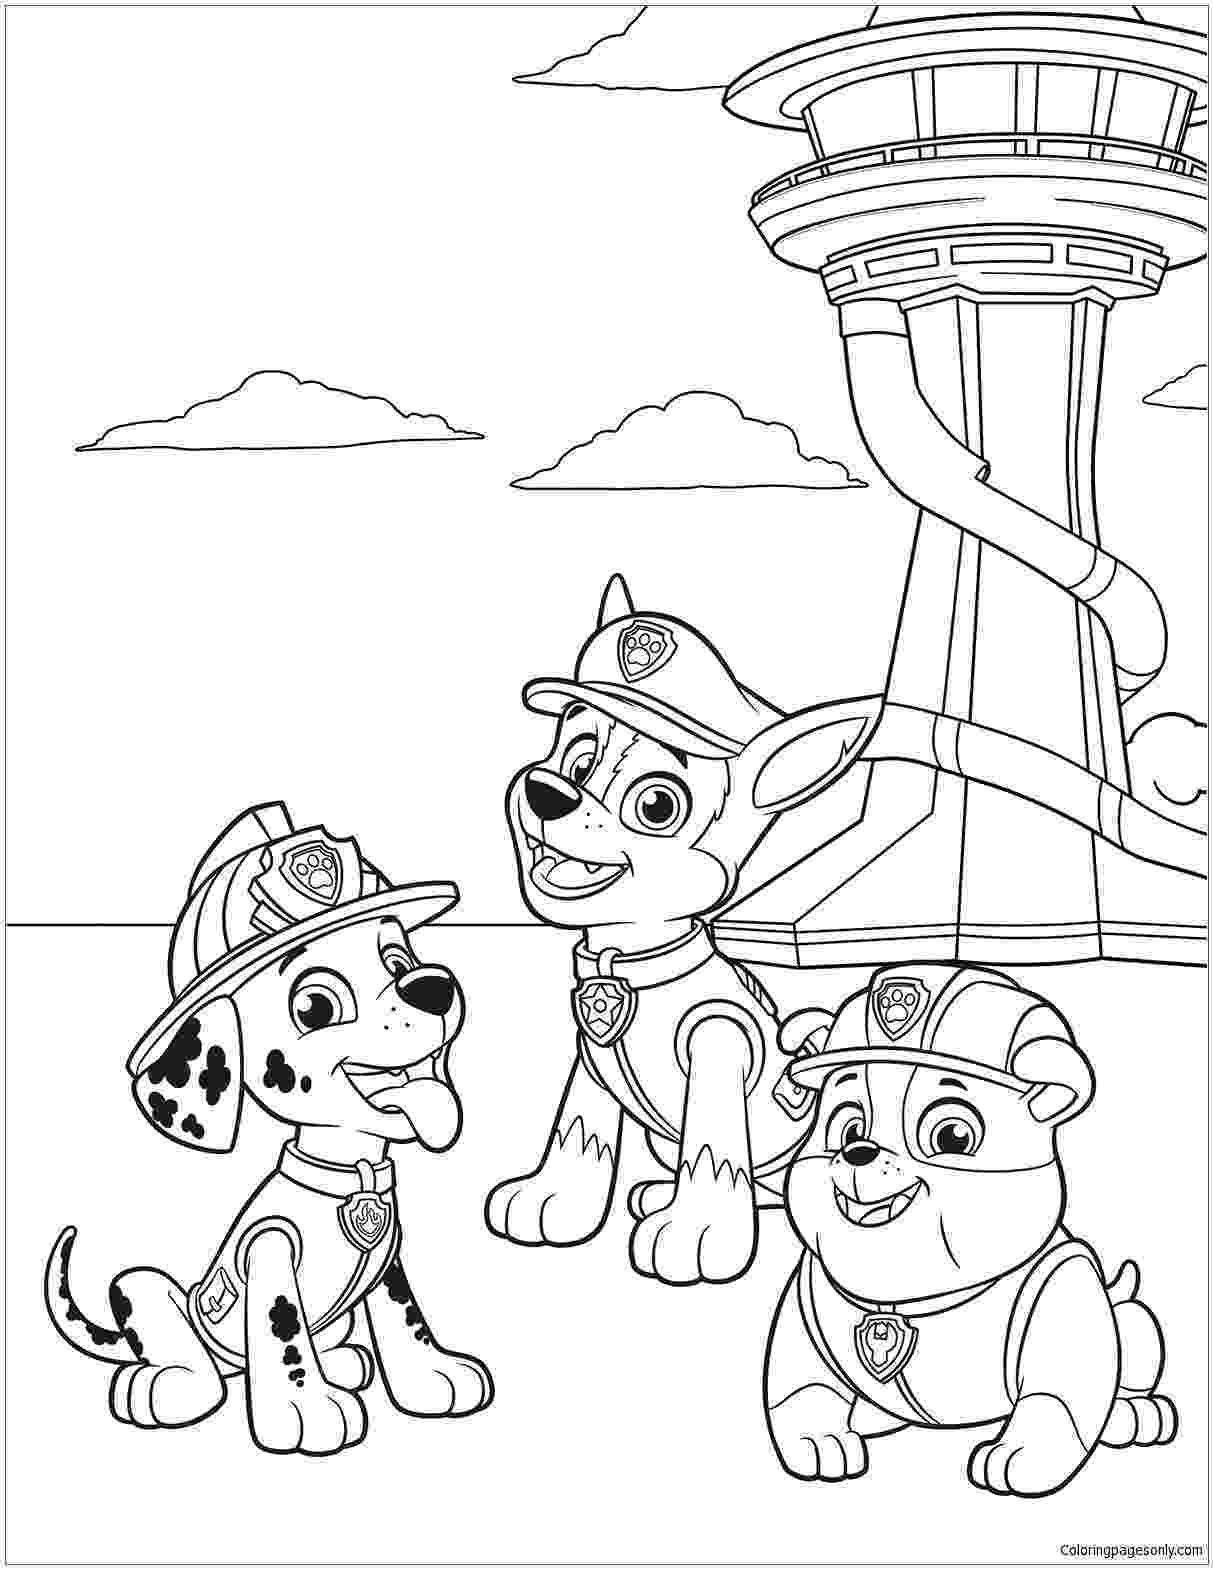 coloring pages of paw patrol free nick jr paw patrol coloring pages coloring patrol paw of pages